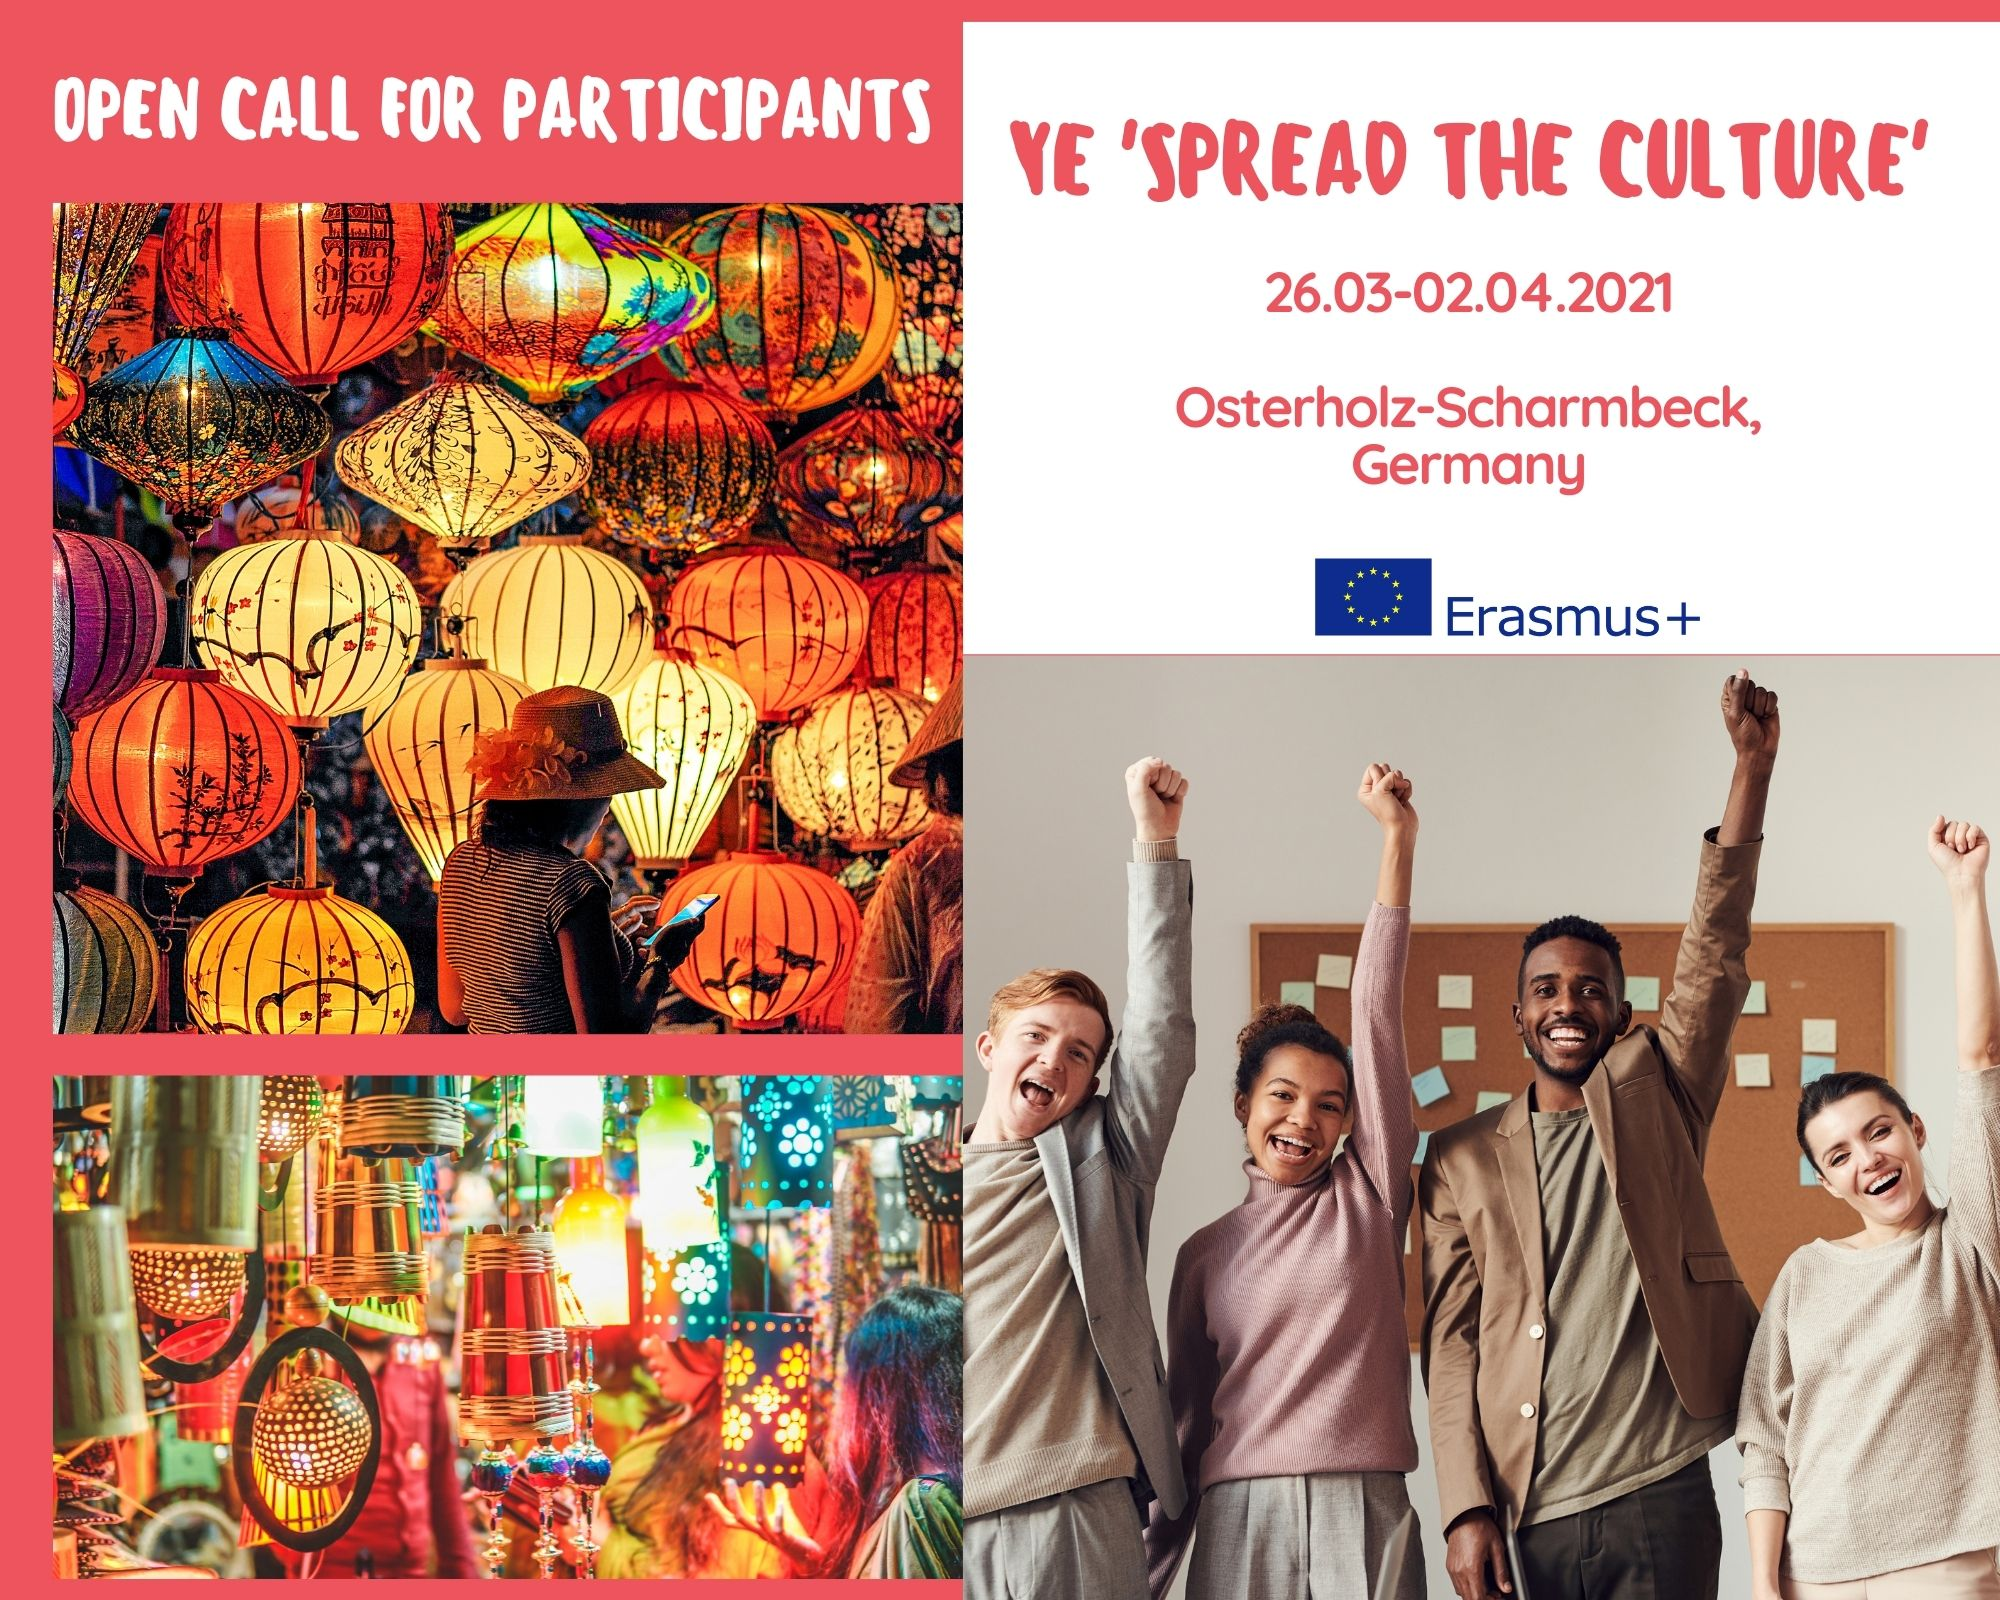 Call for Participants